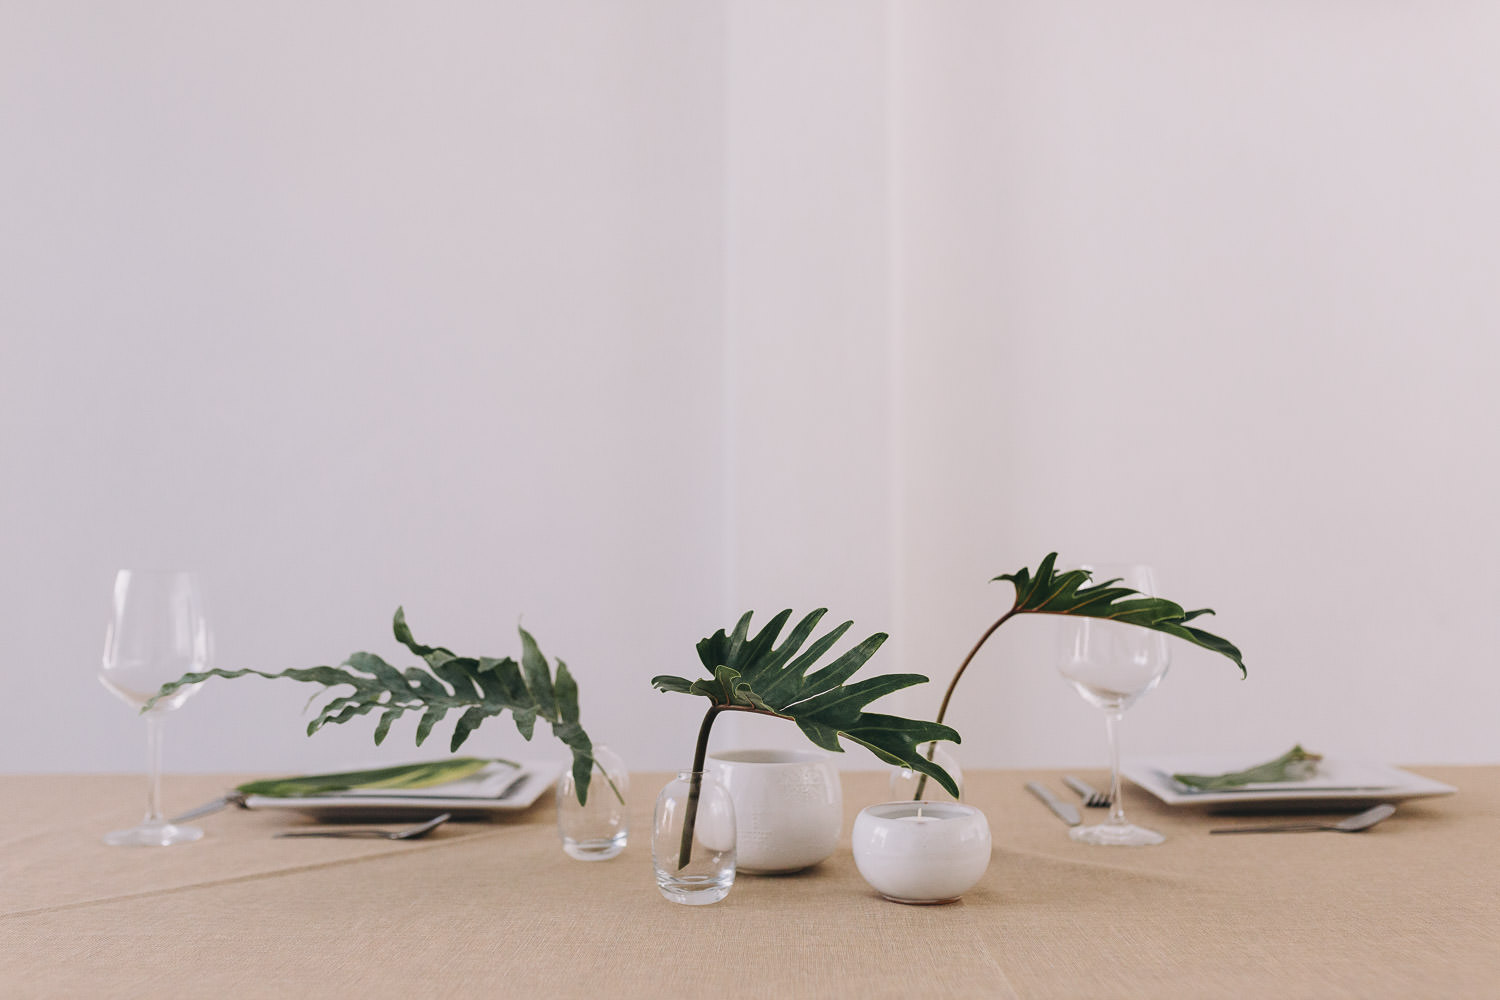 Tropical foliage in simple vases as a table decoration for a wedding